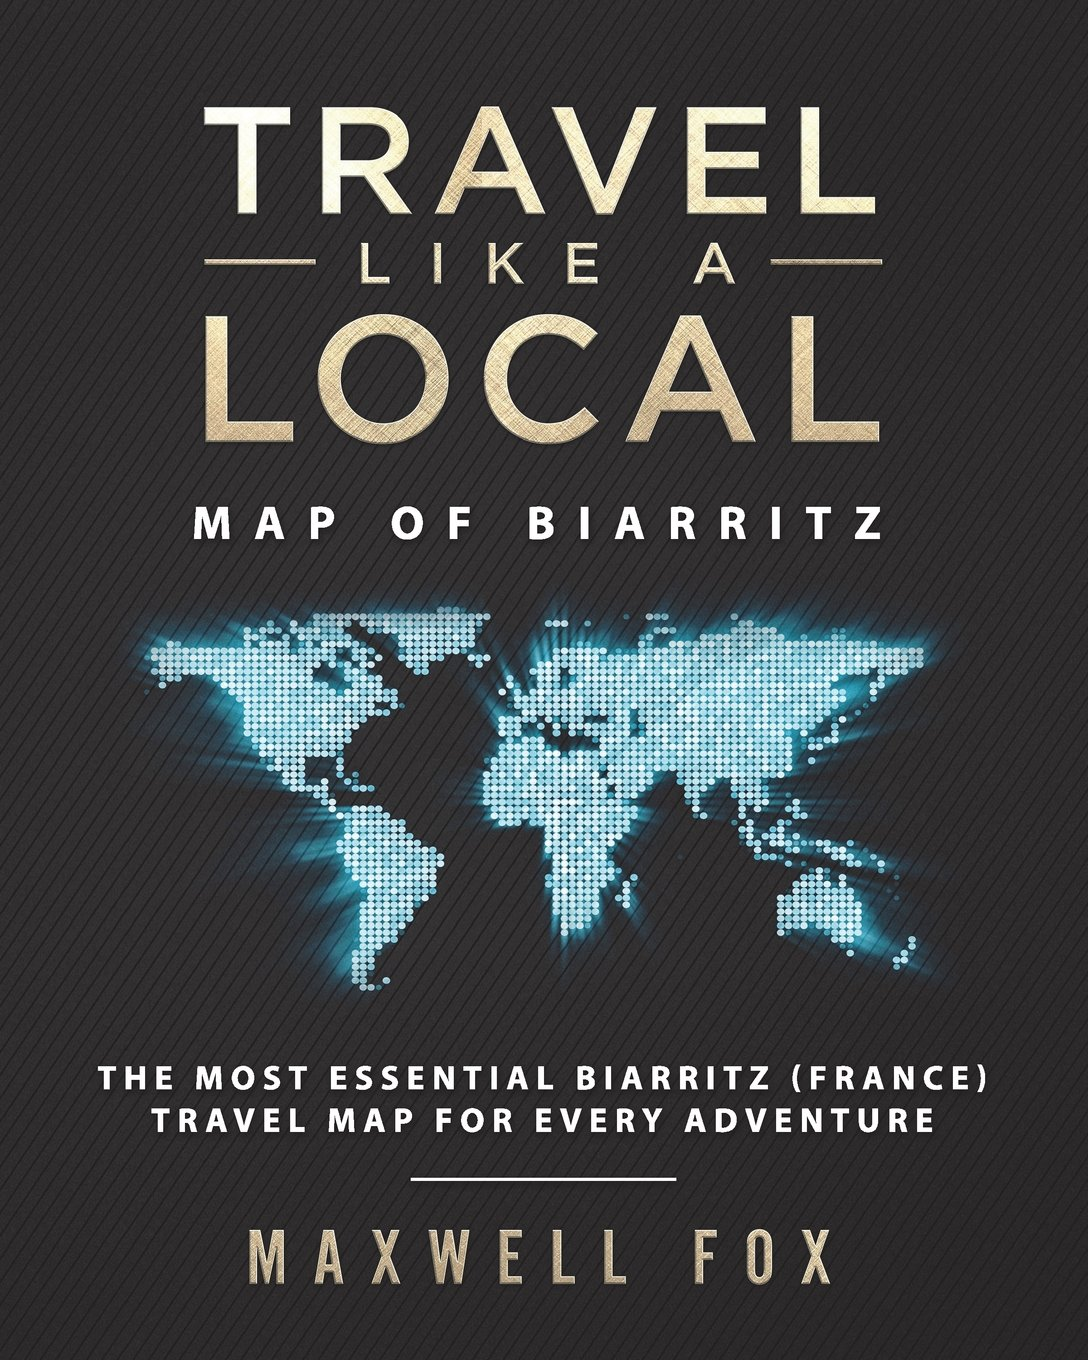 Download Travel Like a Local - Map of Biarritz: The Most Essential Biarritz (France) Travel Map for Every Adventure ebook